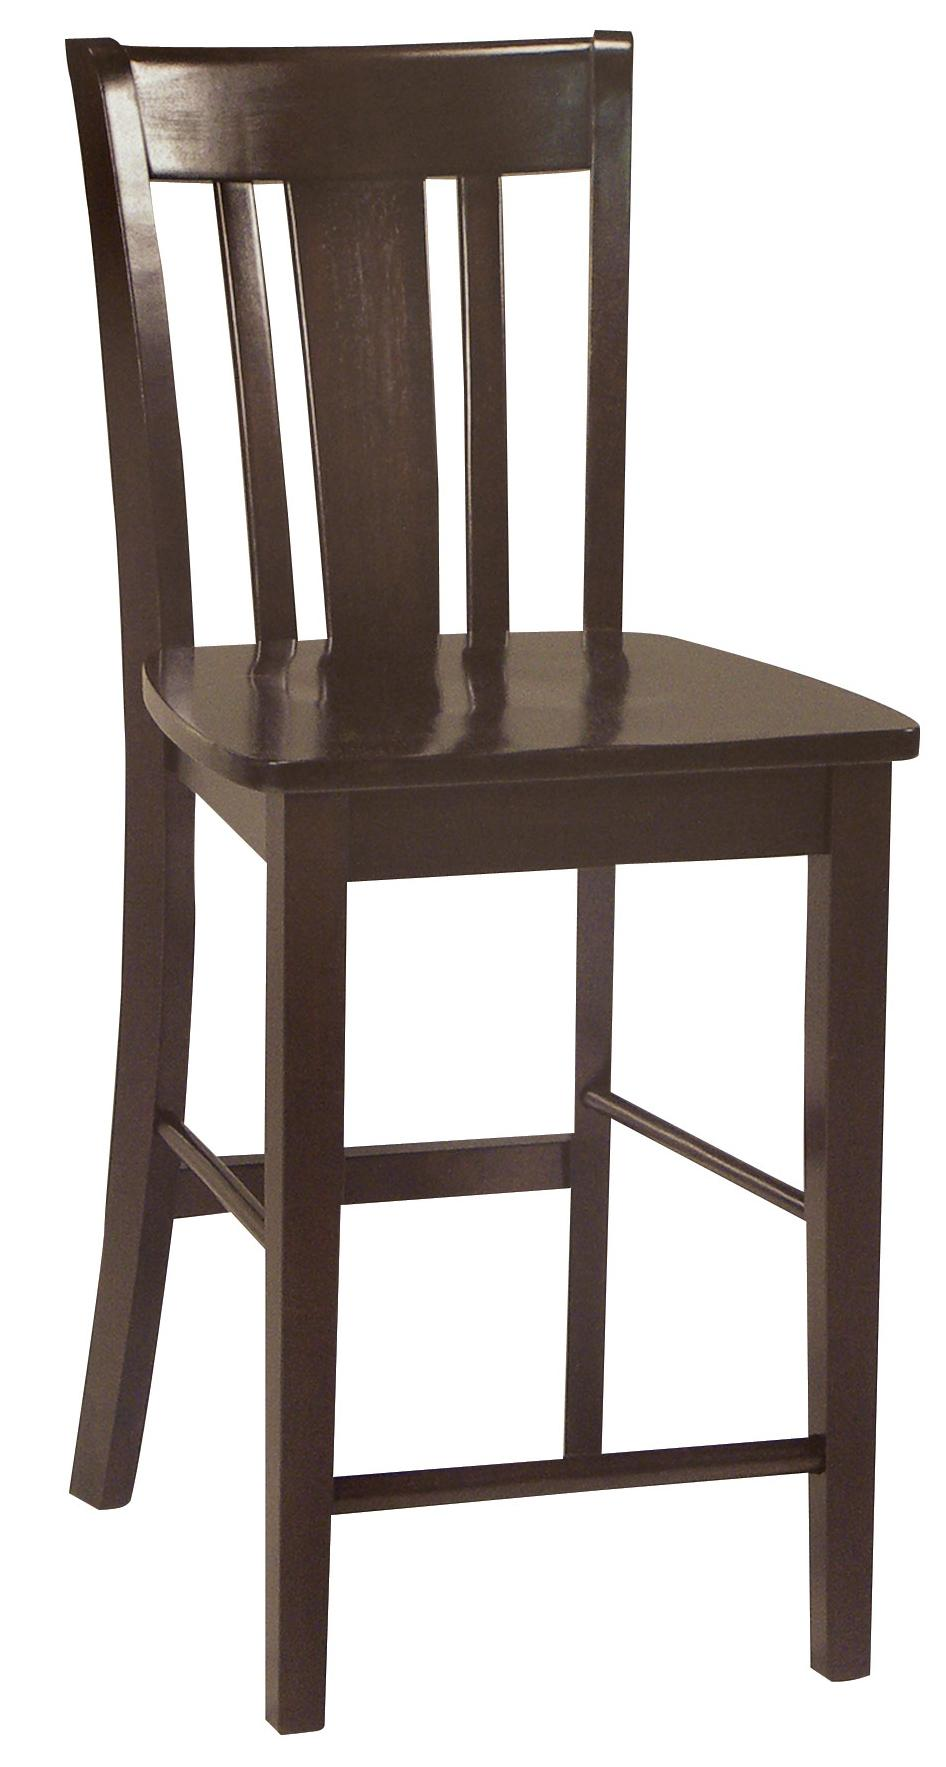 John Thomas Dining Essentials Splat Back Bar Chair - Item Number: S15-102